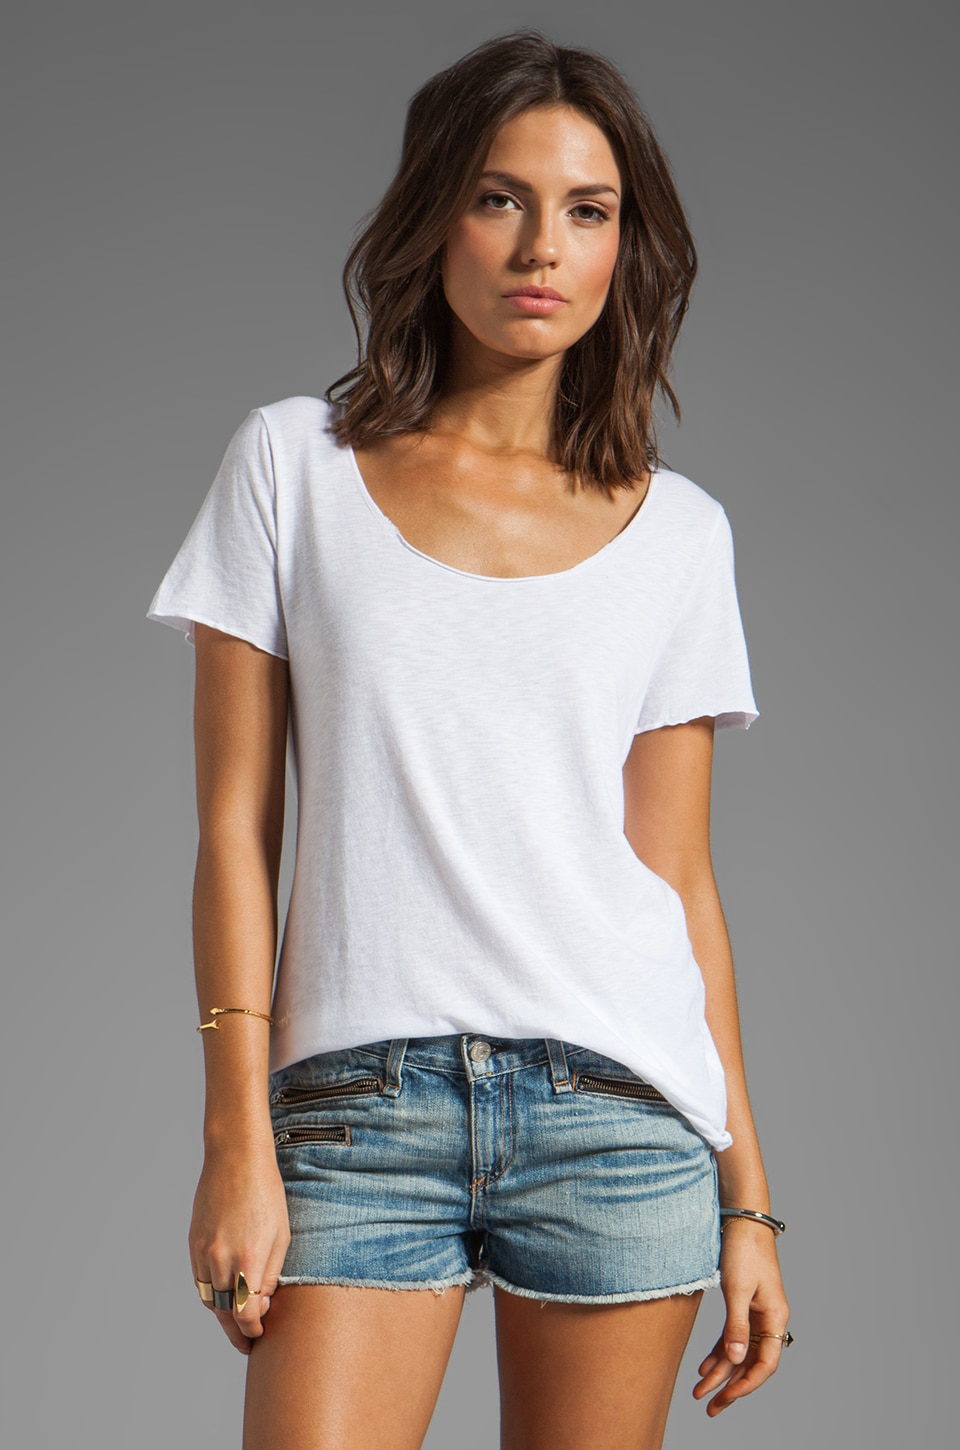 Michael Stars Luxe Slub Short Sleeve Scoop Neck With Low Hi Top in White